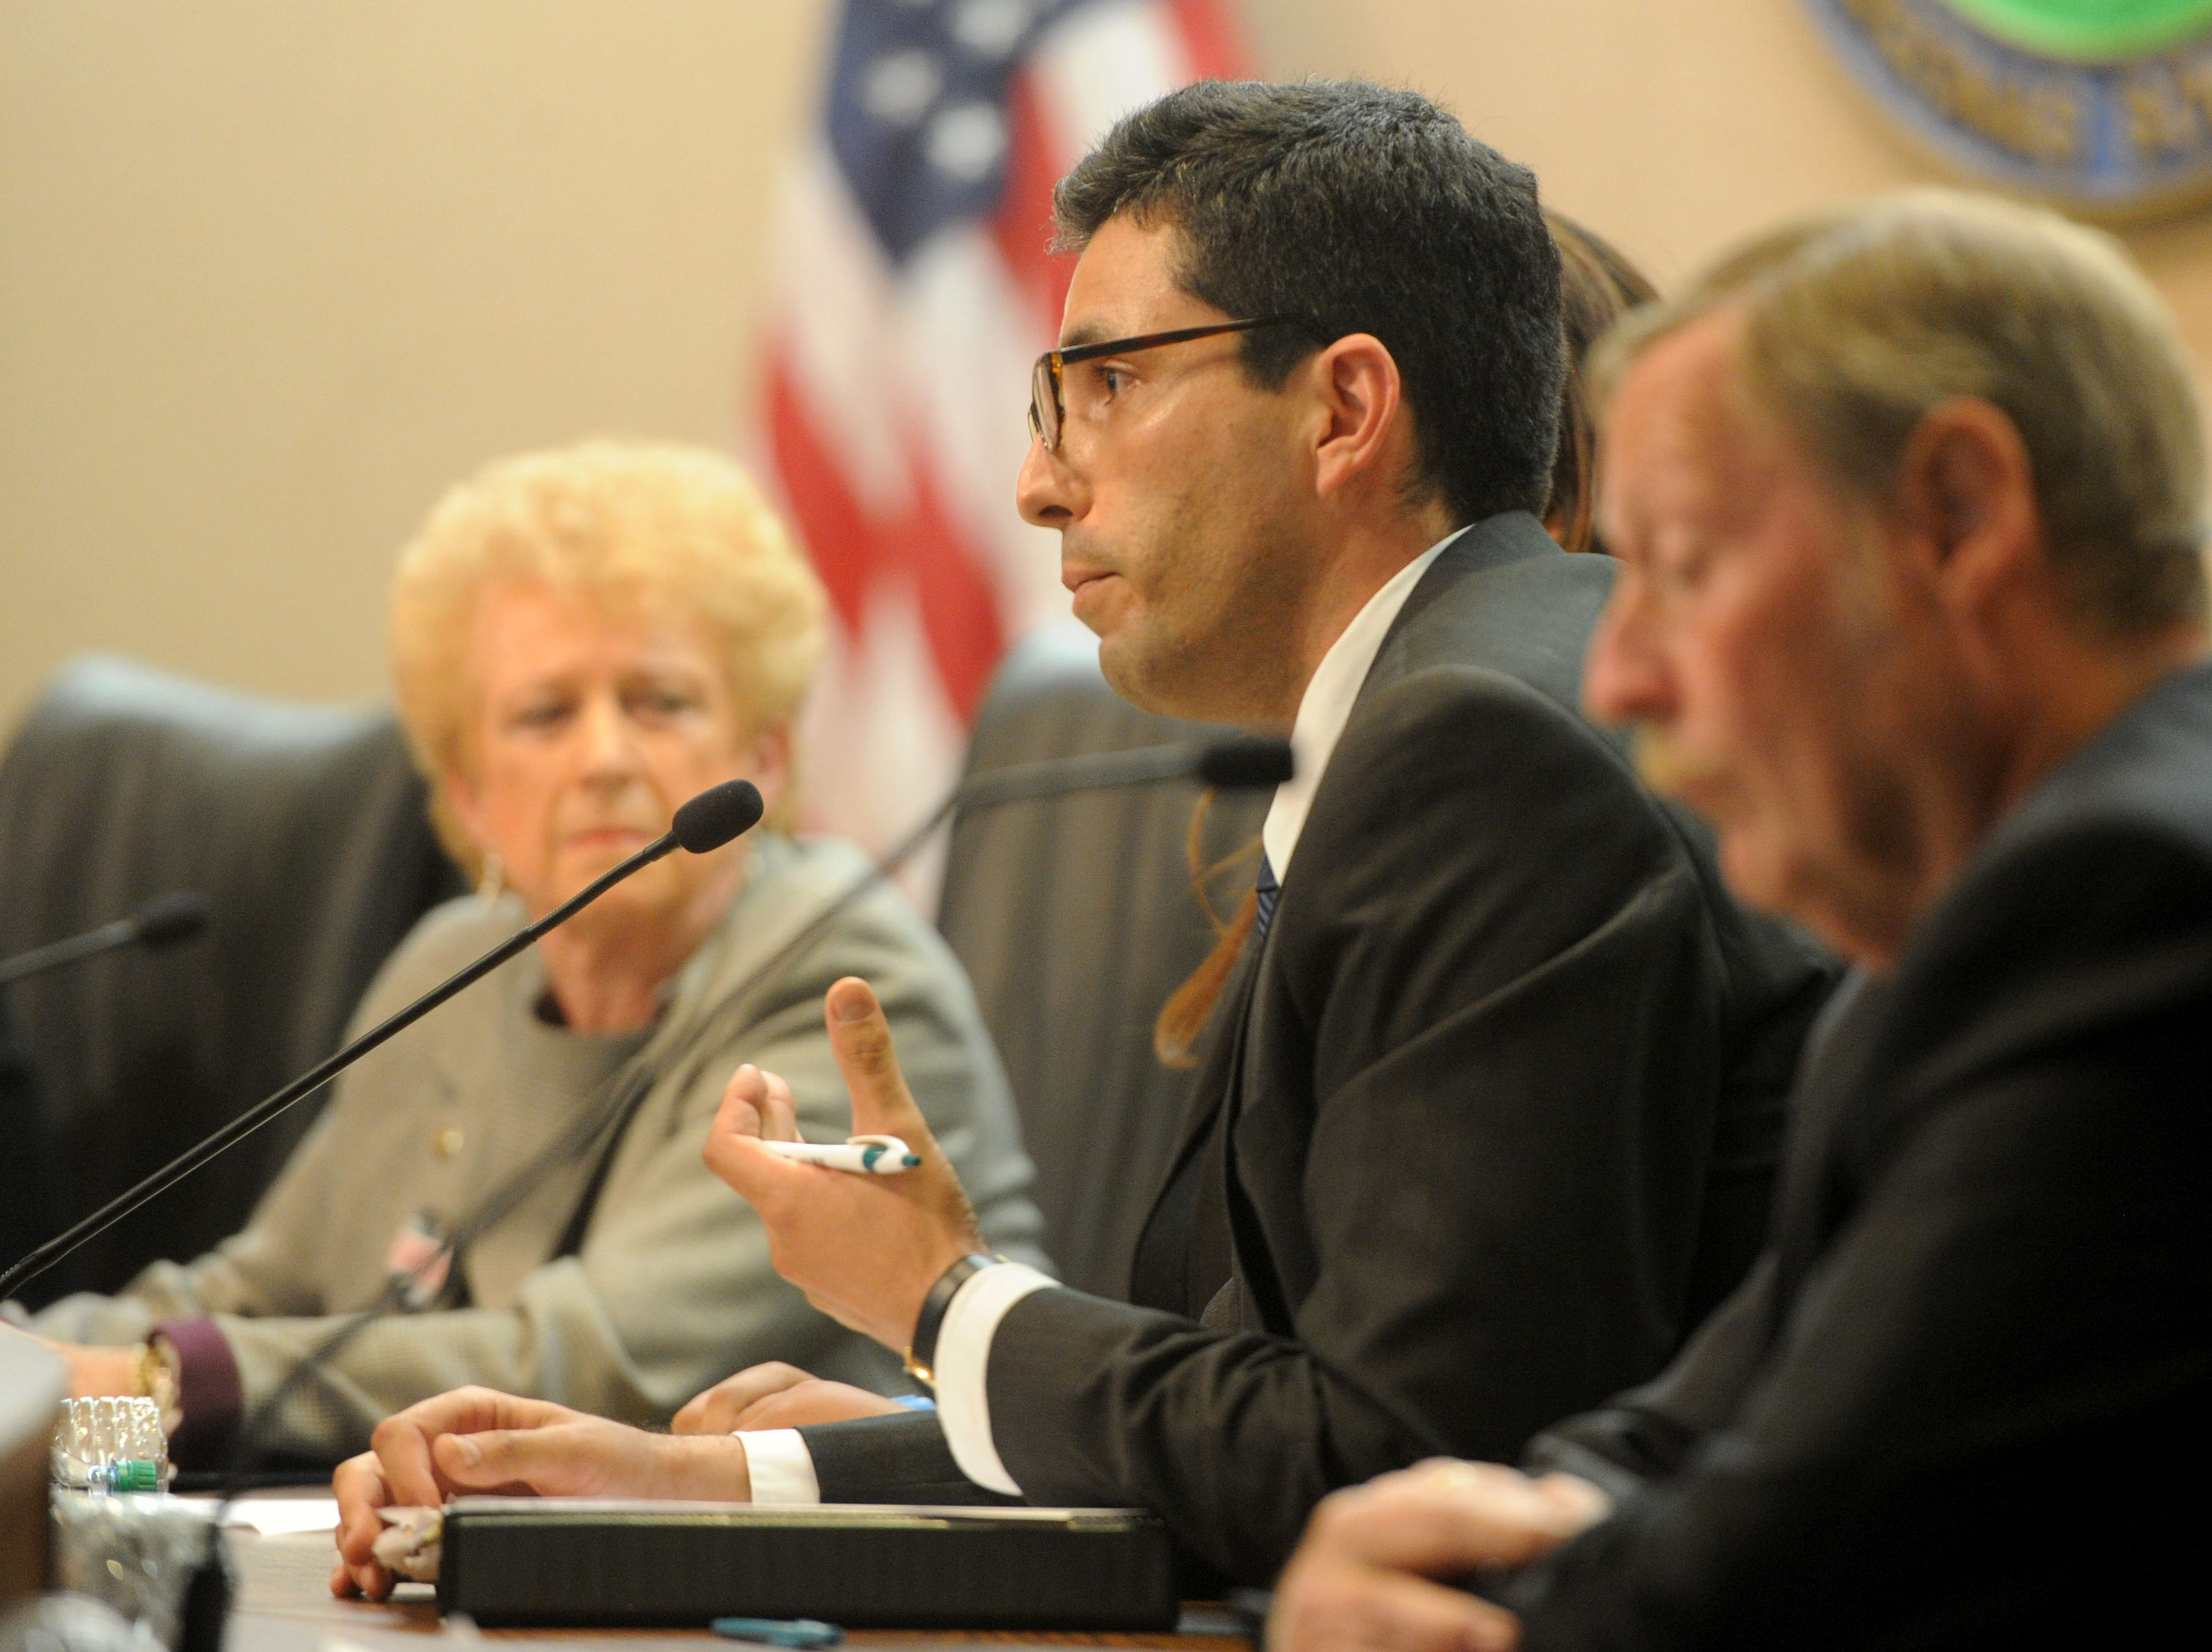 Daniel Goldberg gives an opening statement Tuesday night during a Camarillo City Council forum. Nine candidates are running to fill three seats. The forum was put byVentura County League of Women Voters.